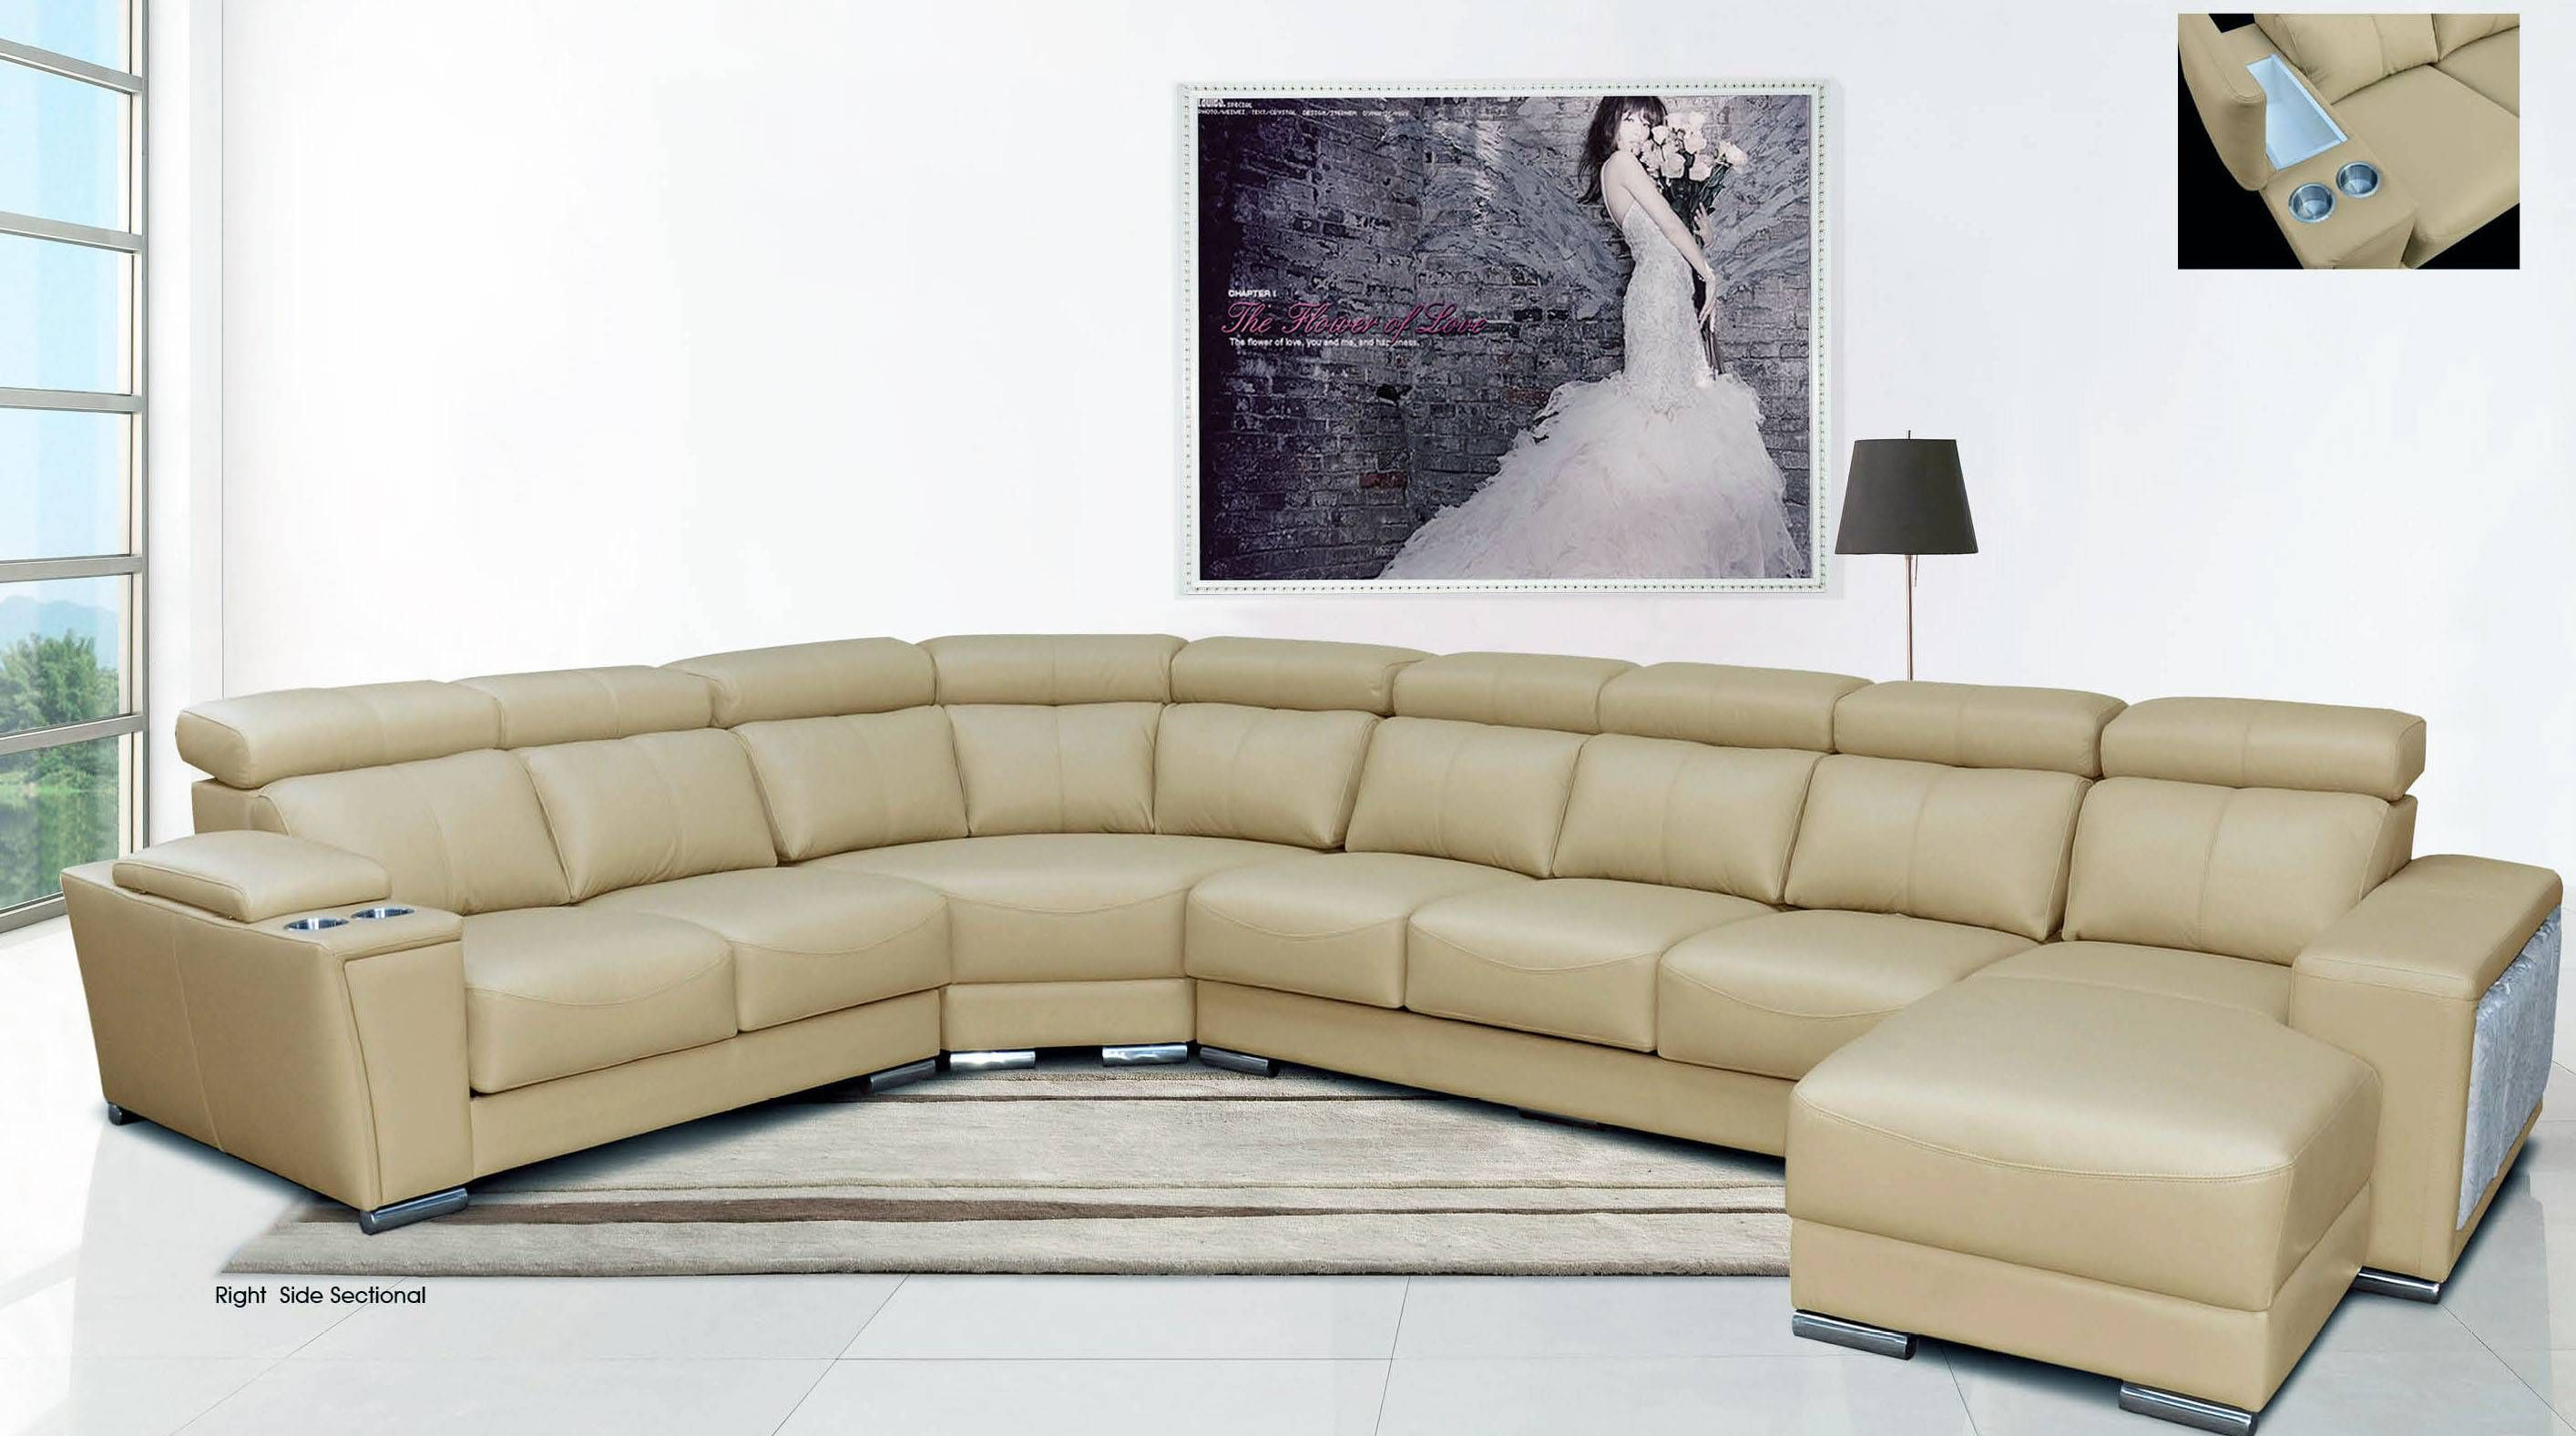 Cream Italian Leather Extra Large Sectional With Cup Holders Reclining Sectional Comfortable Sectional Sofa Comfortable Sectional